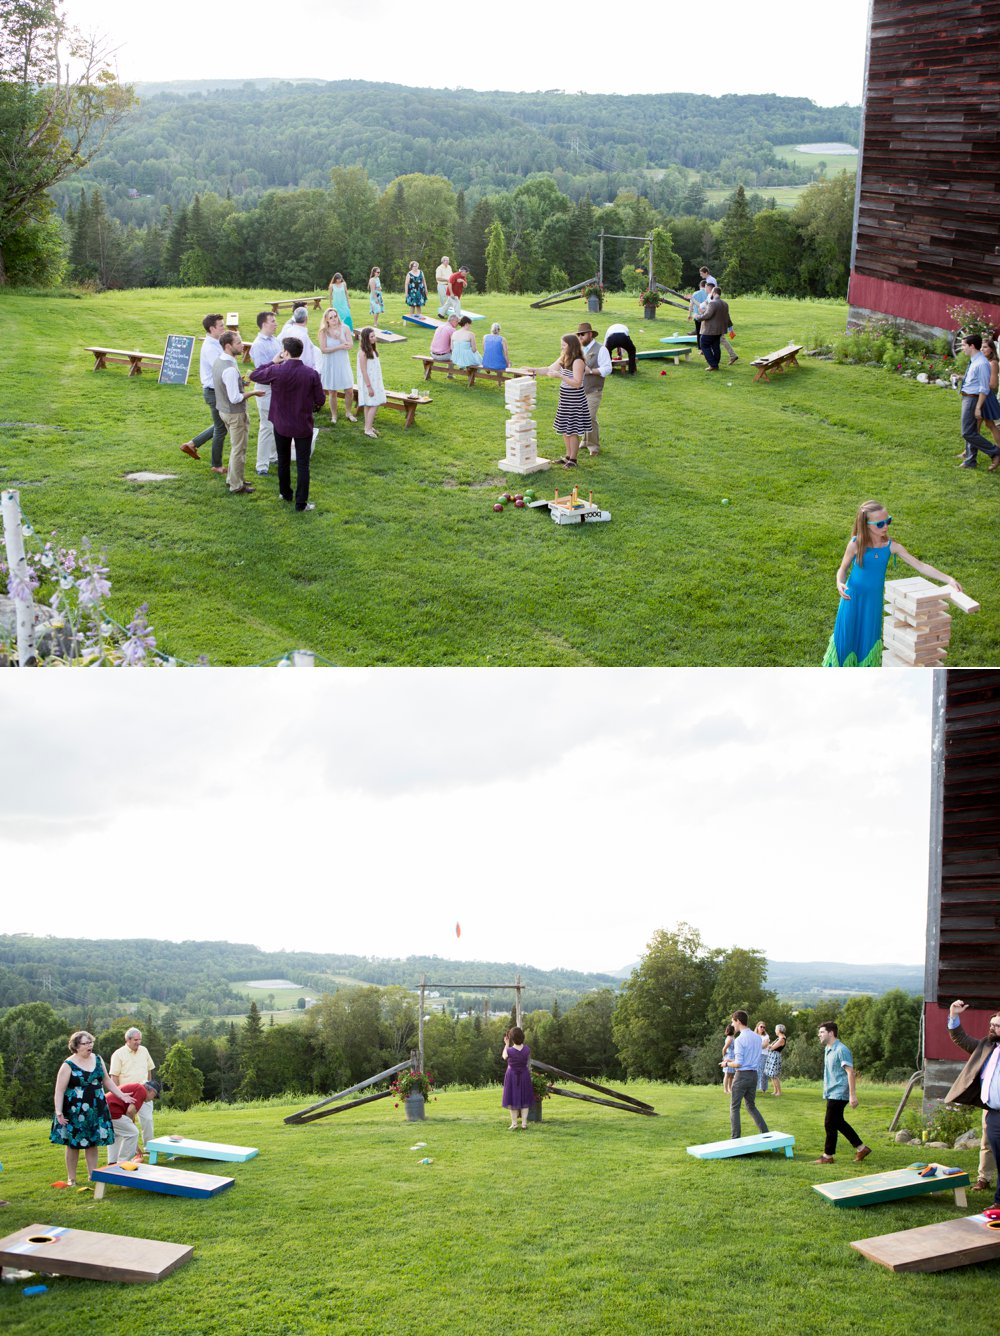 SomerbyJonesPhotography_VermontWedding_CyrBarn_CryBarnWedding_0042.jpg